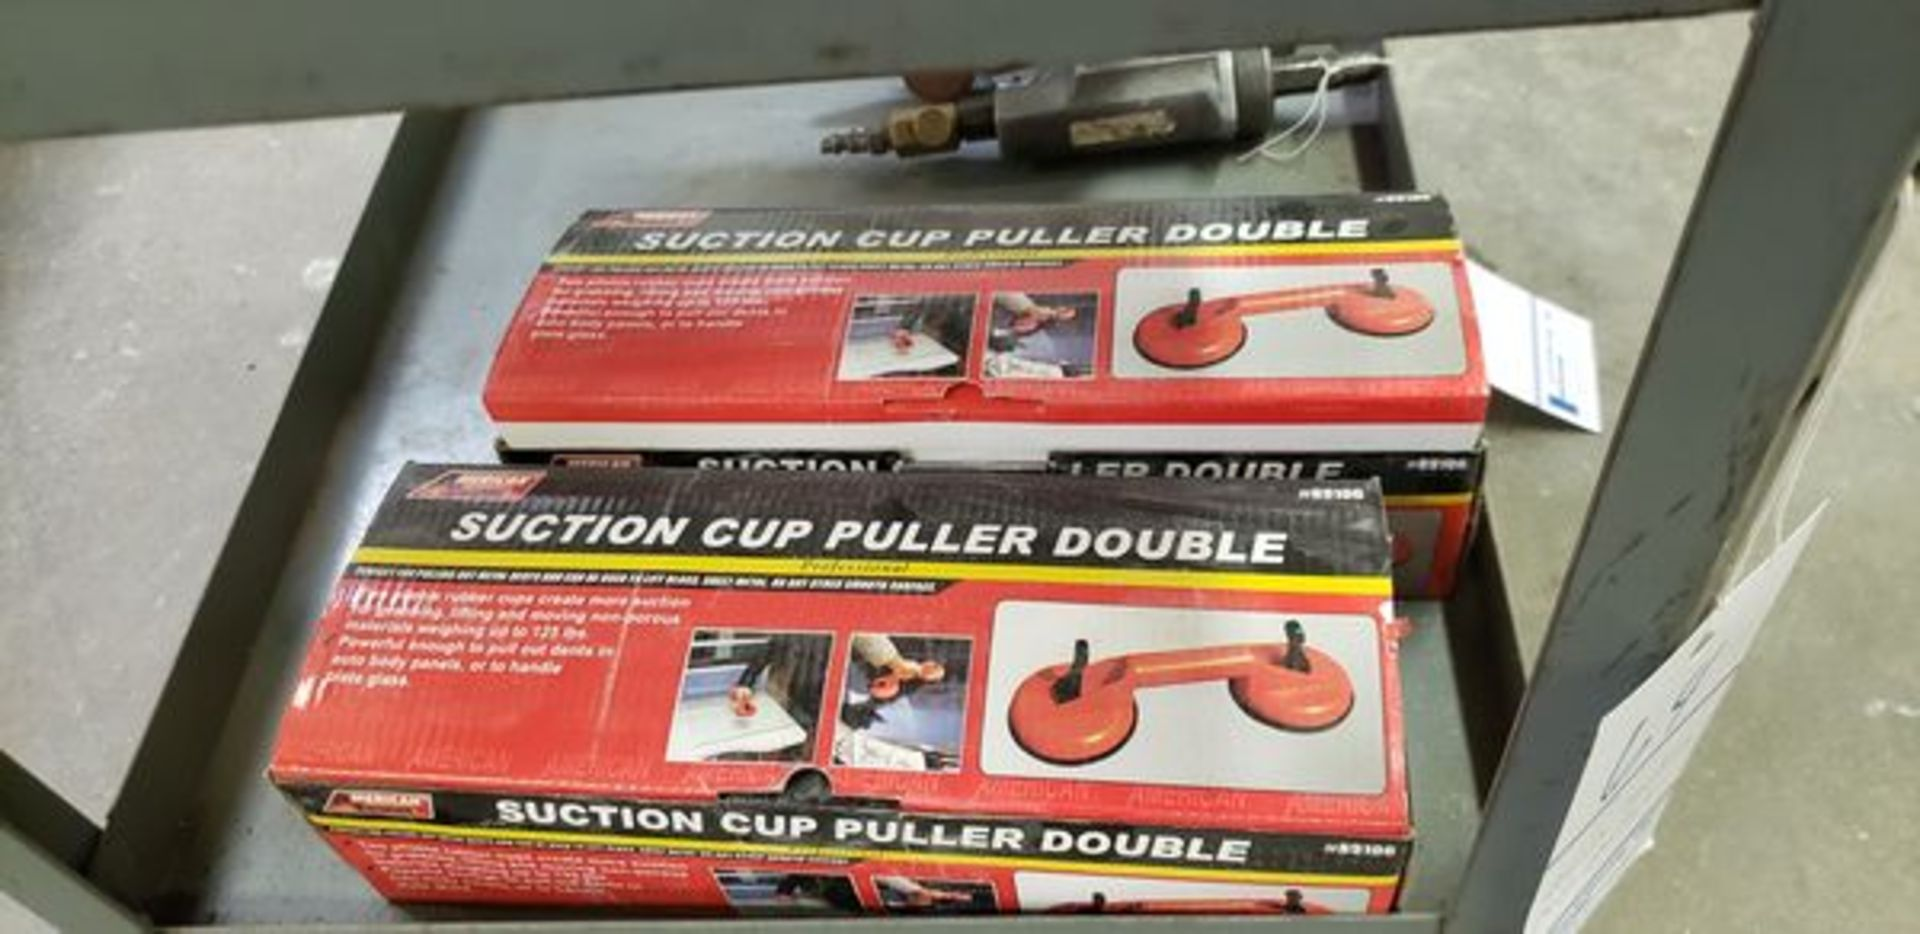 DOUBLE SUCTION CUP PULLER - Image 2 of 2